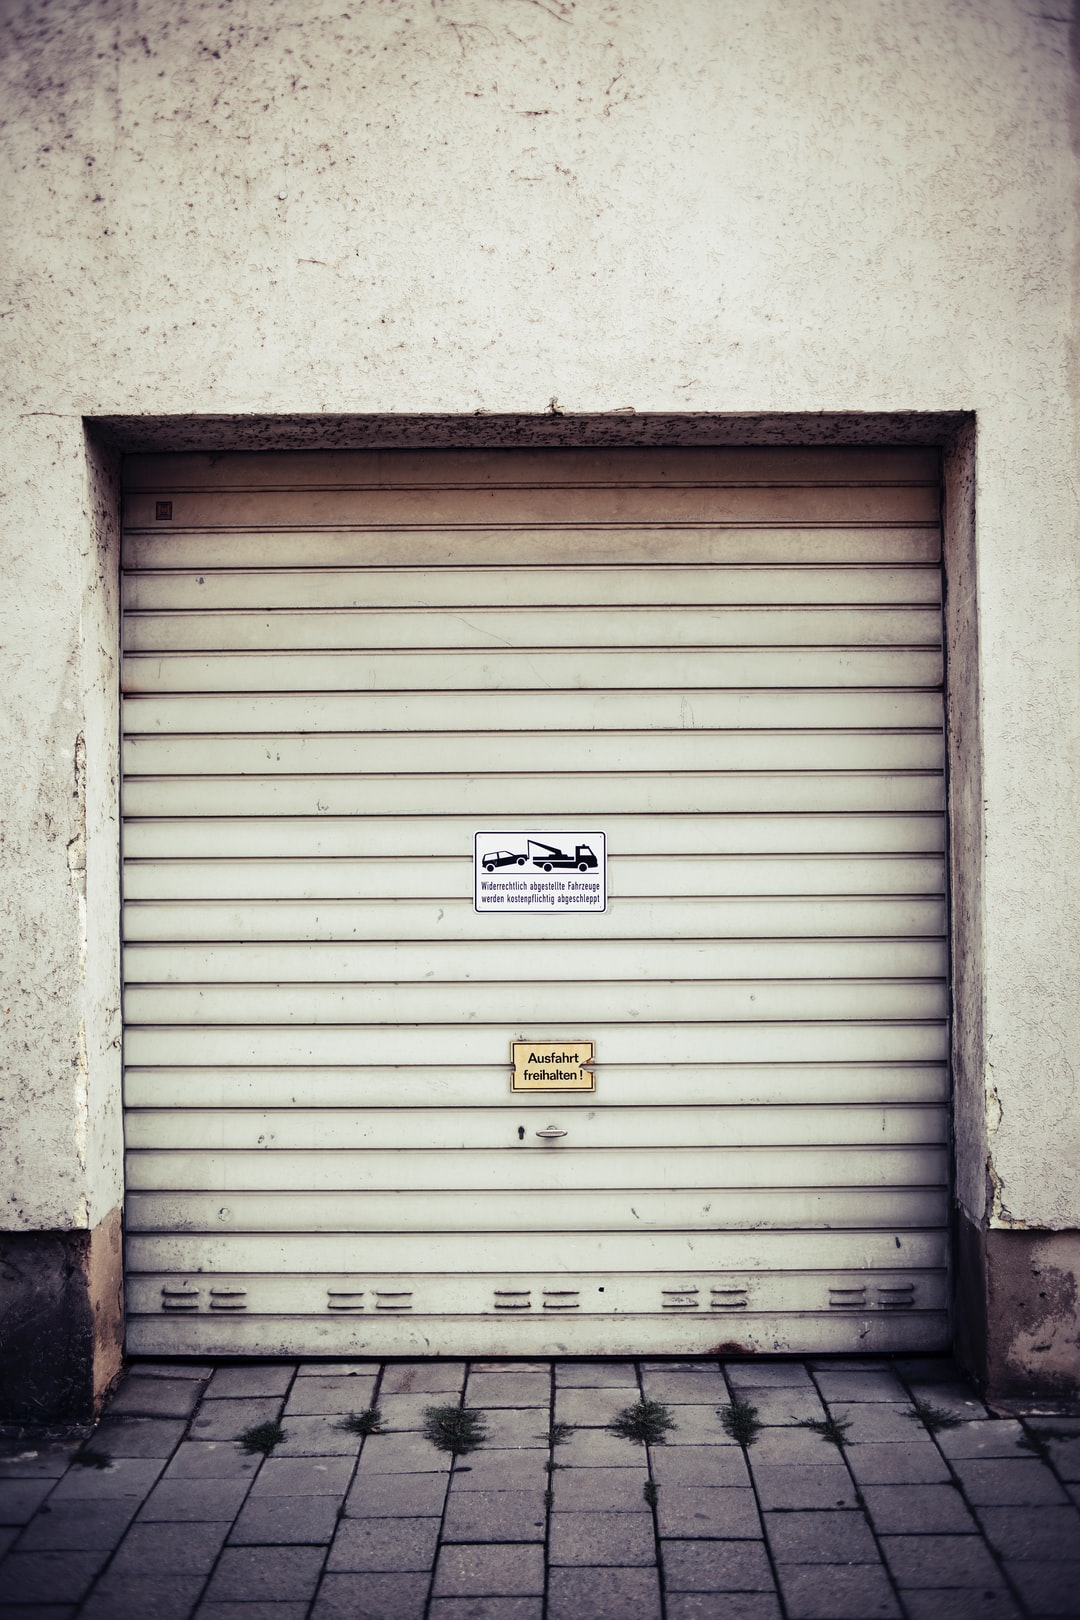 Cloesed garage sliding gate. Made with Canon 5d Mark III and vintage analog lens Leica Summicron-R 2.0 50mm.